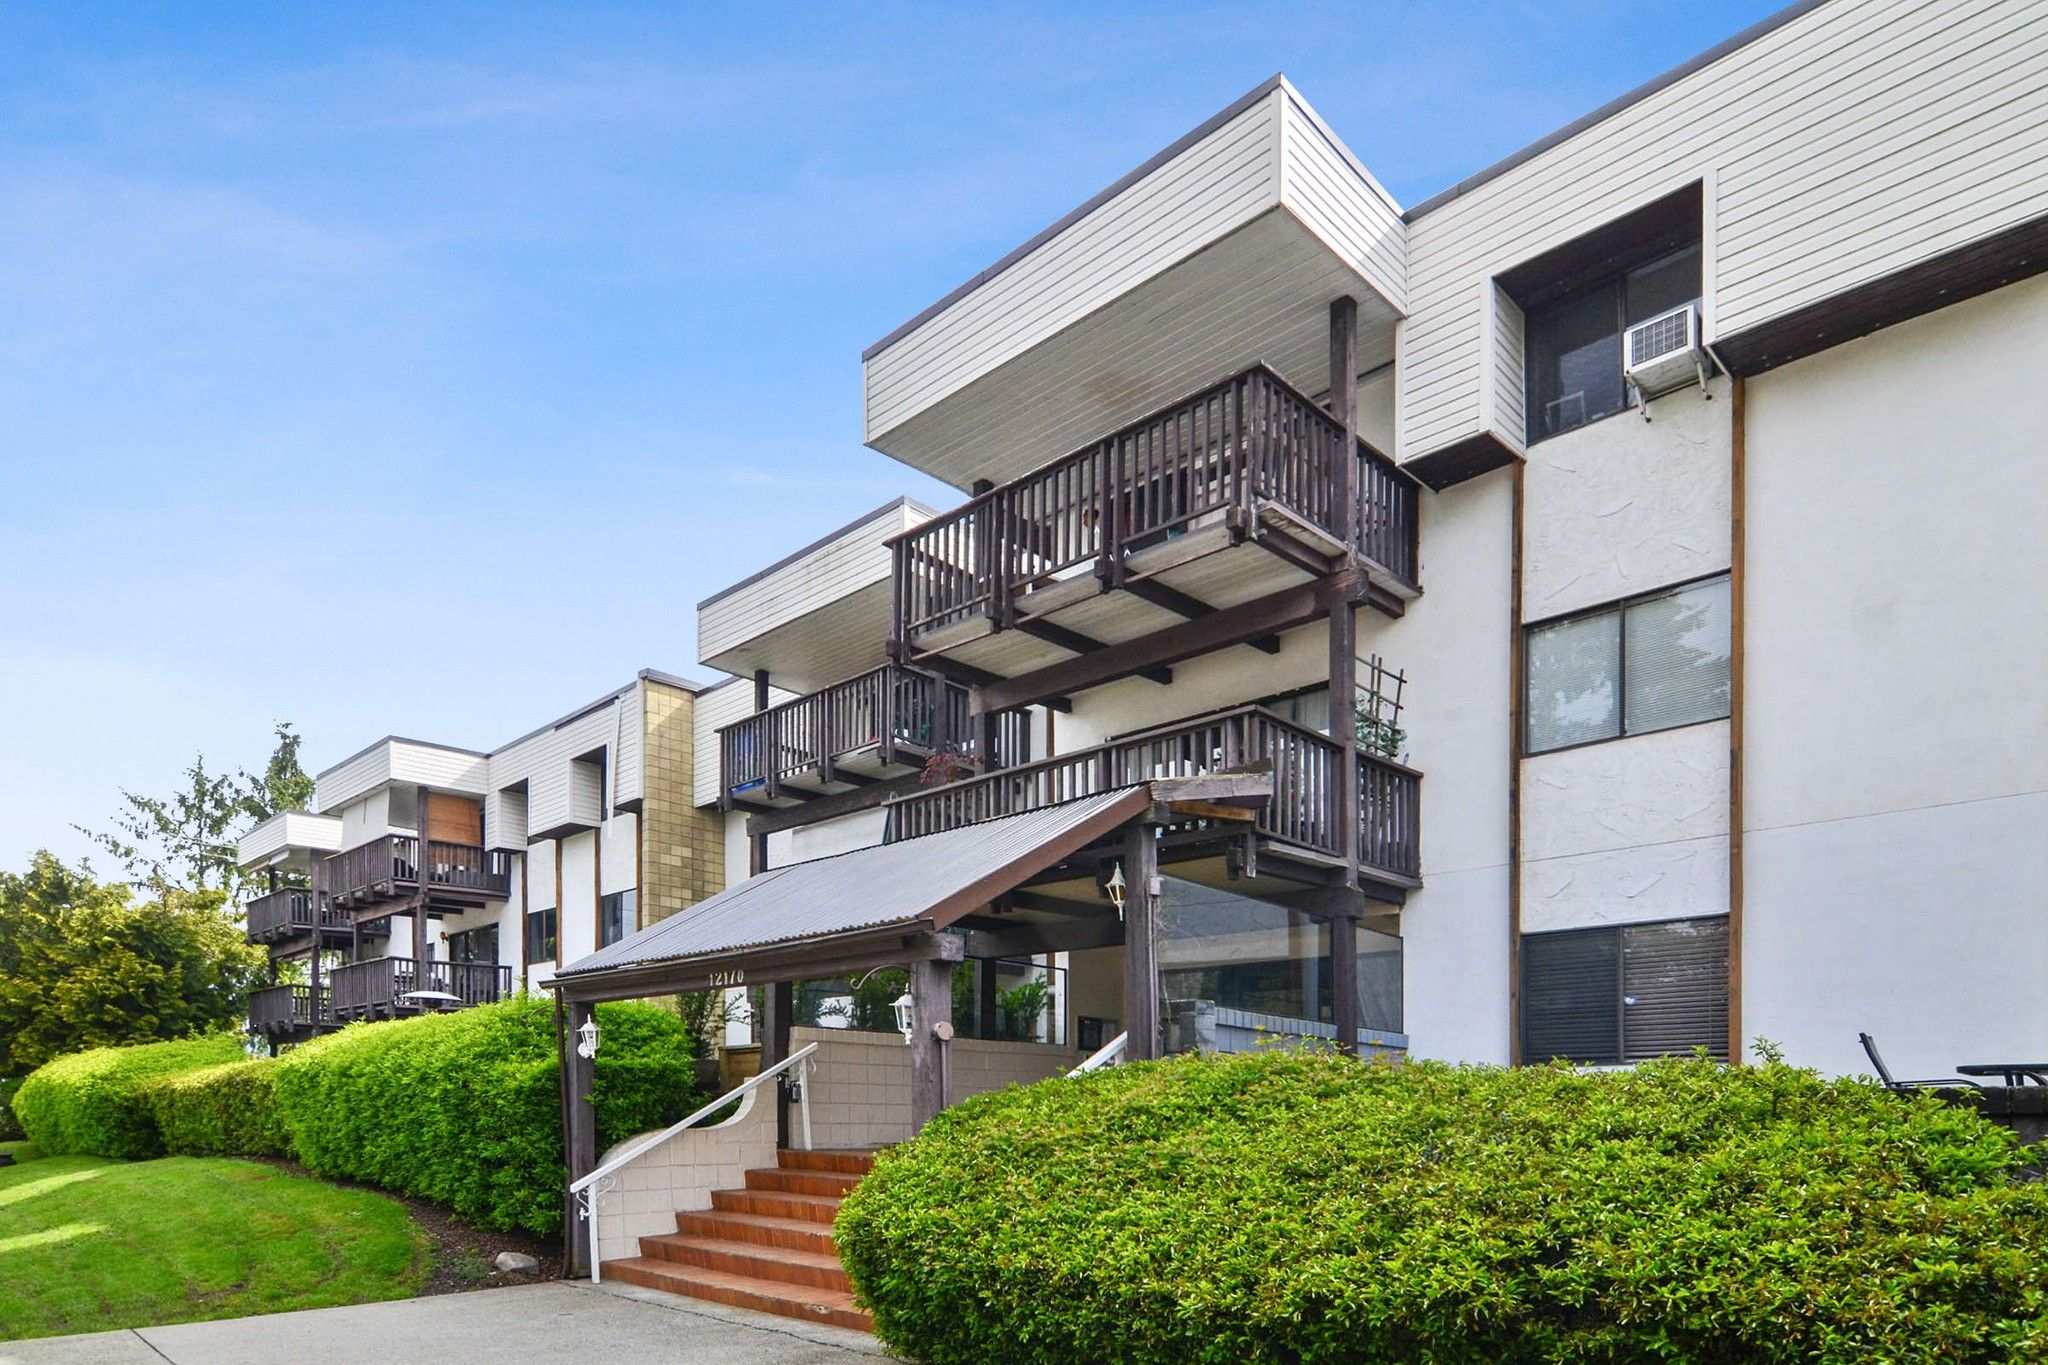 """Main Photo: 108 12170 222 Street in Maple Ridge: West Central Condo for sale in """"Wildwood Terrace"""" : MLS®# R2537908"""